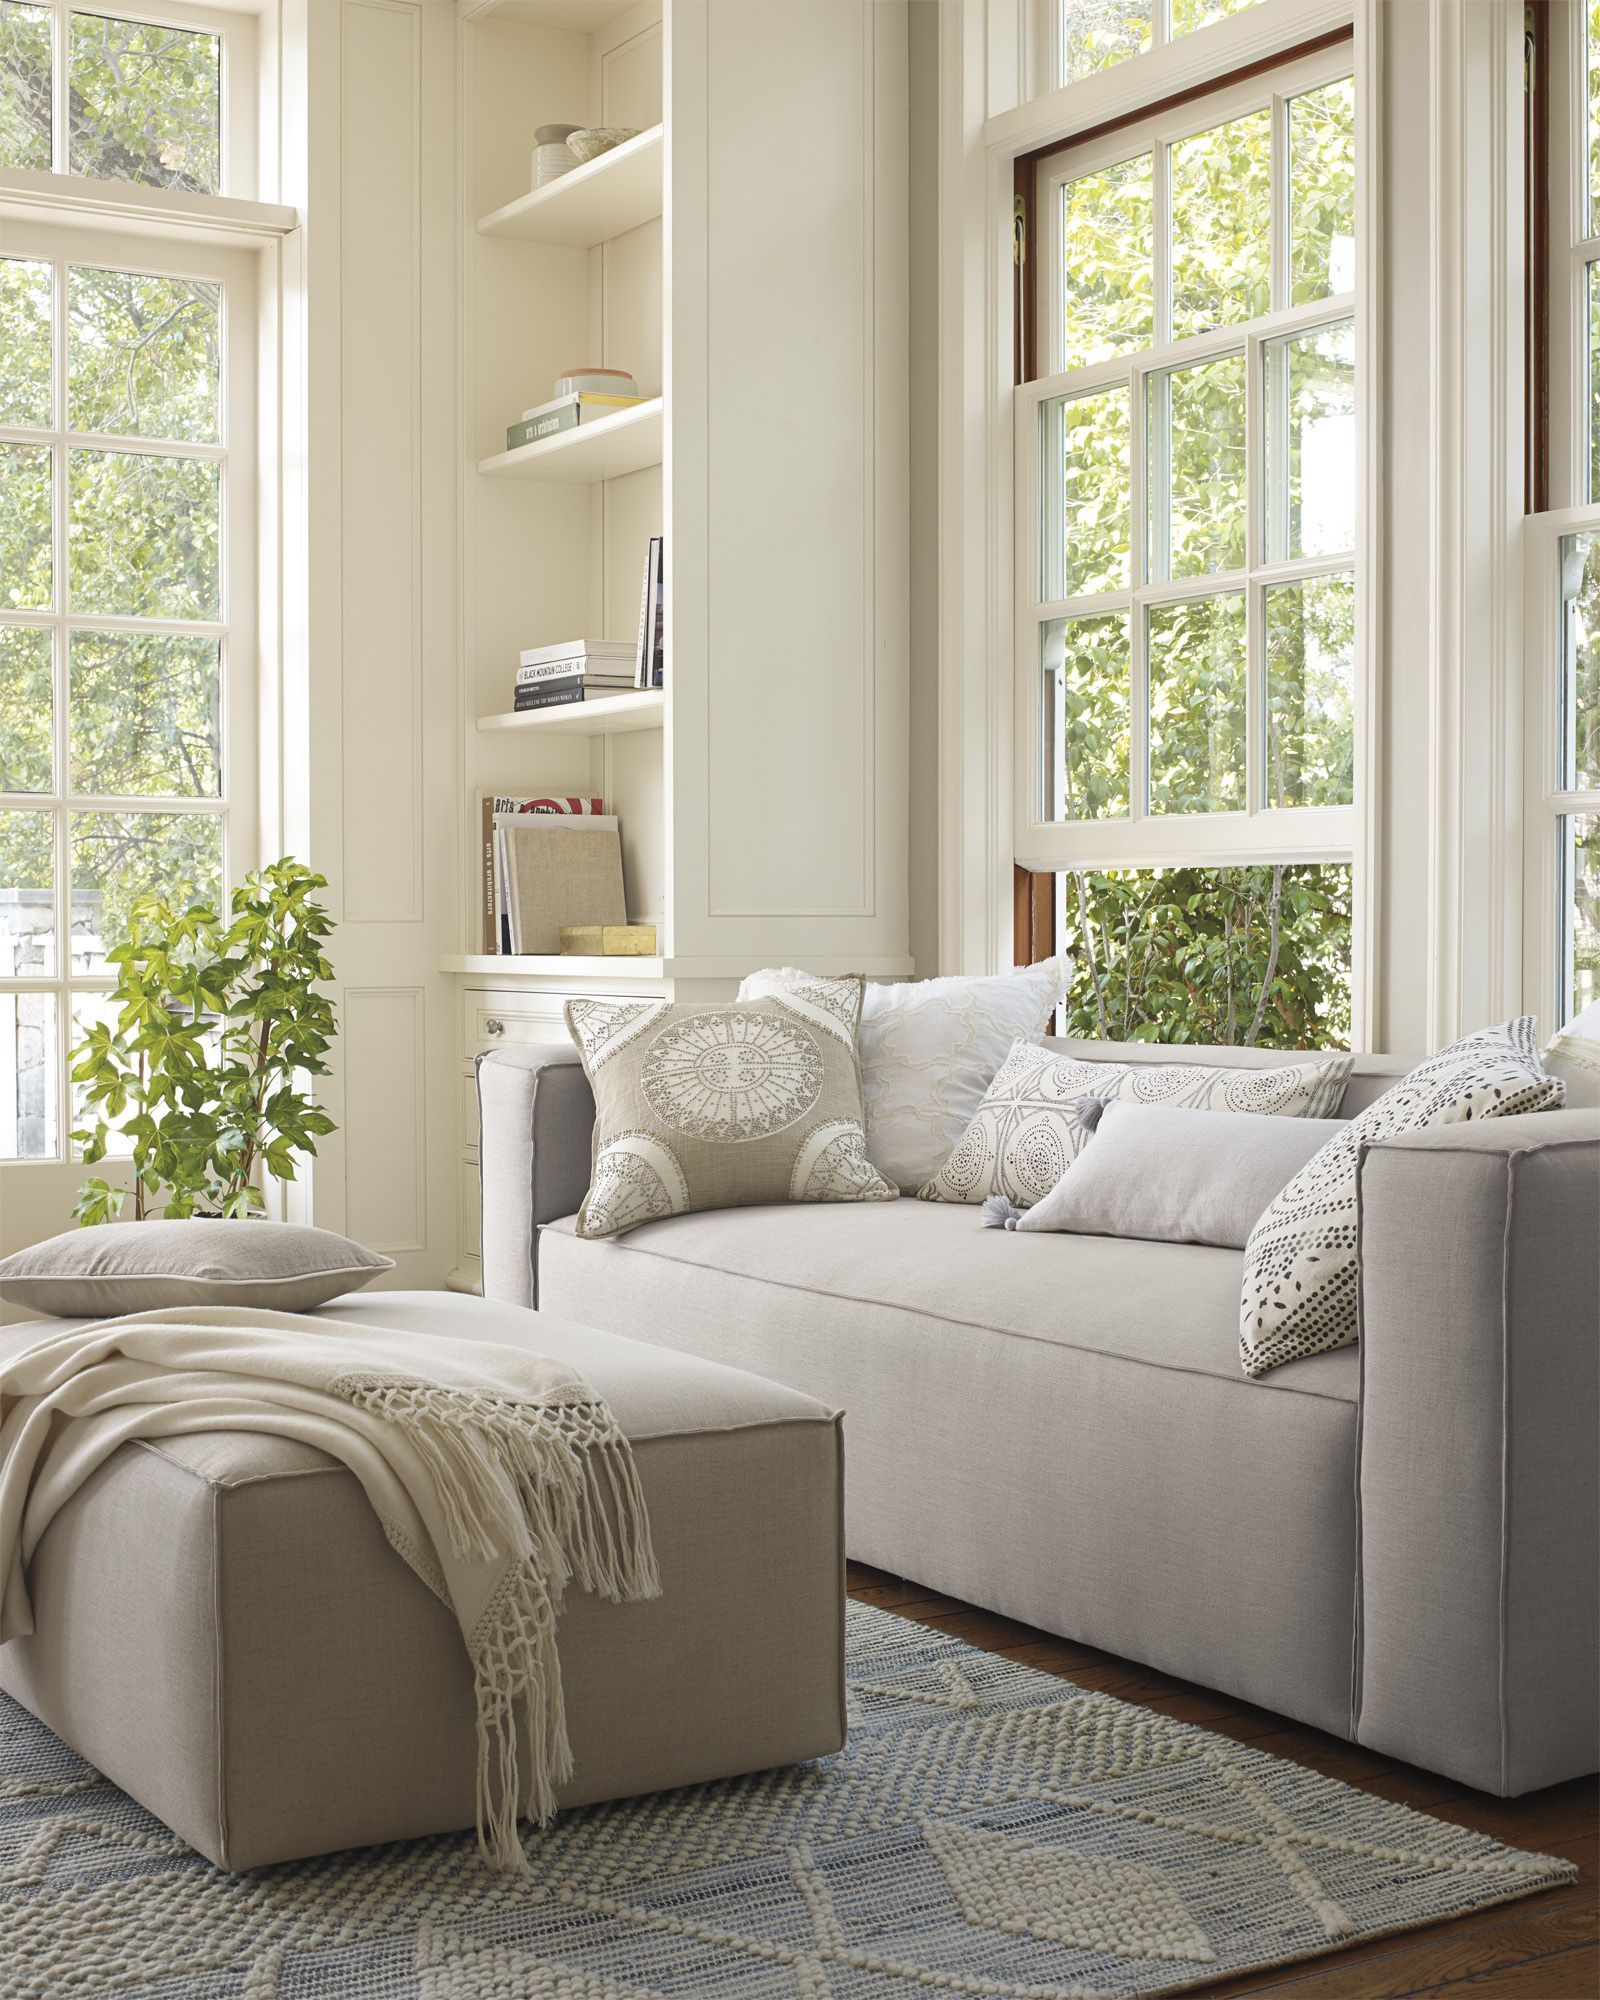 Warm Neutrals Living Room with lots of Natural Light - Serena and